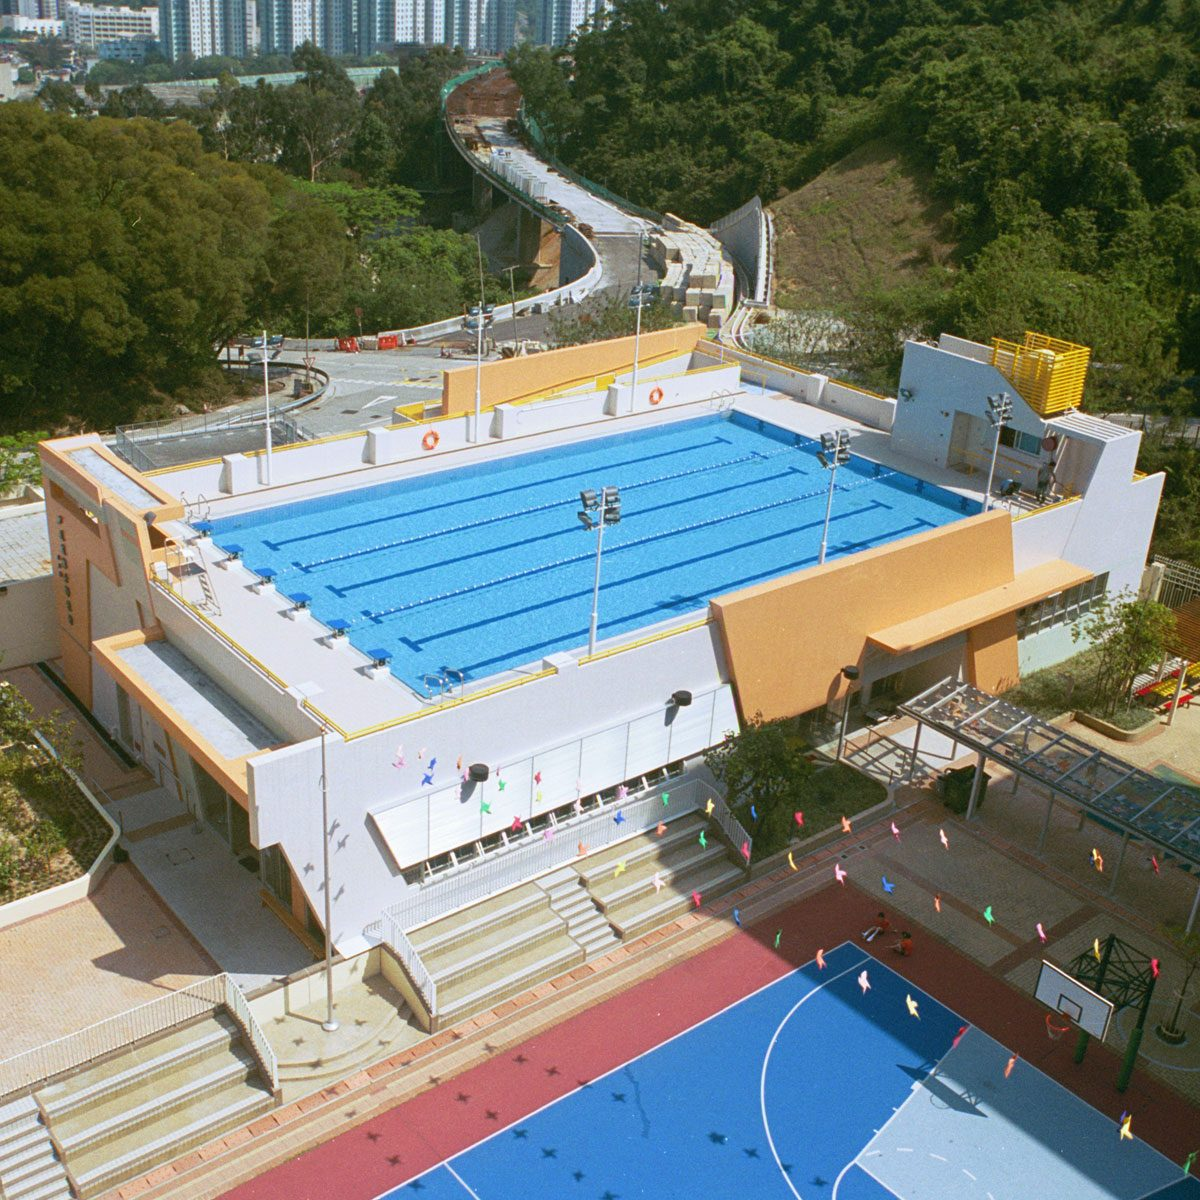 Dr. Lee Shau Kee Swimming Pool Complex, Institutional Development at Pui Kiu College, Lower Shing Mun Road, Shatin, Tai Wai, New Territories